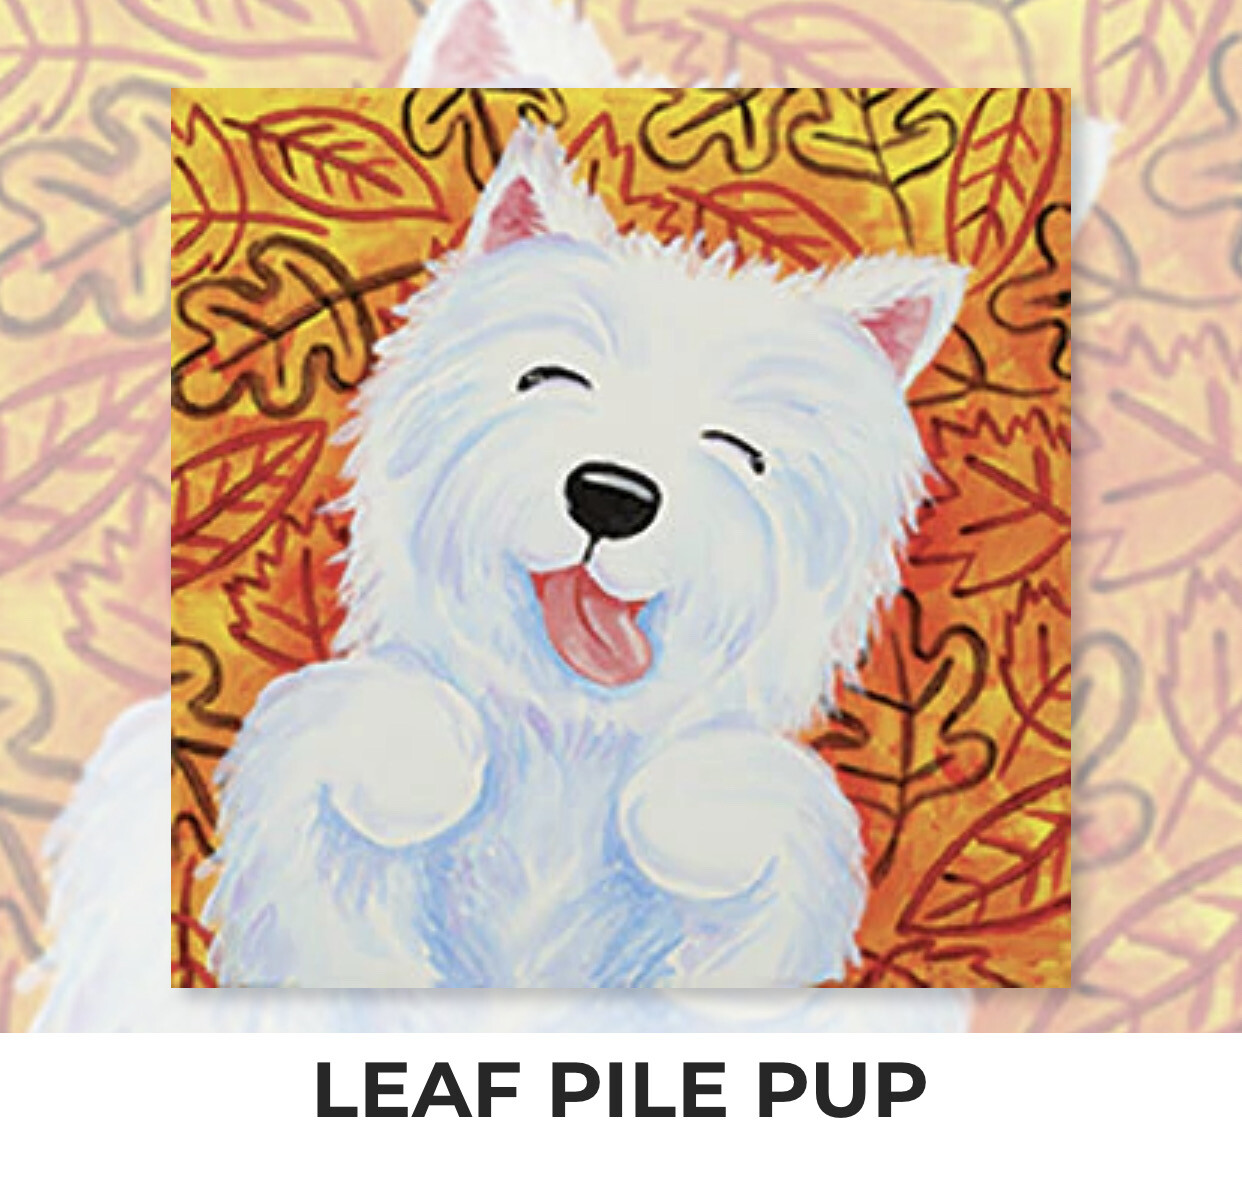 Leaf Pile Pup KIDS Acrylic Paint On Canvas DIY Art Kit - 3 Week Special Order